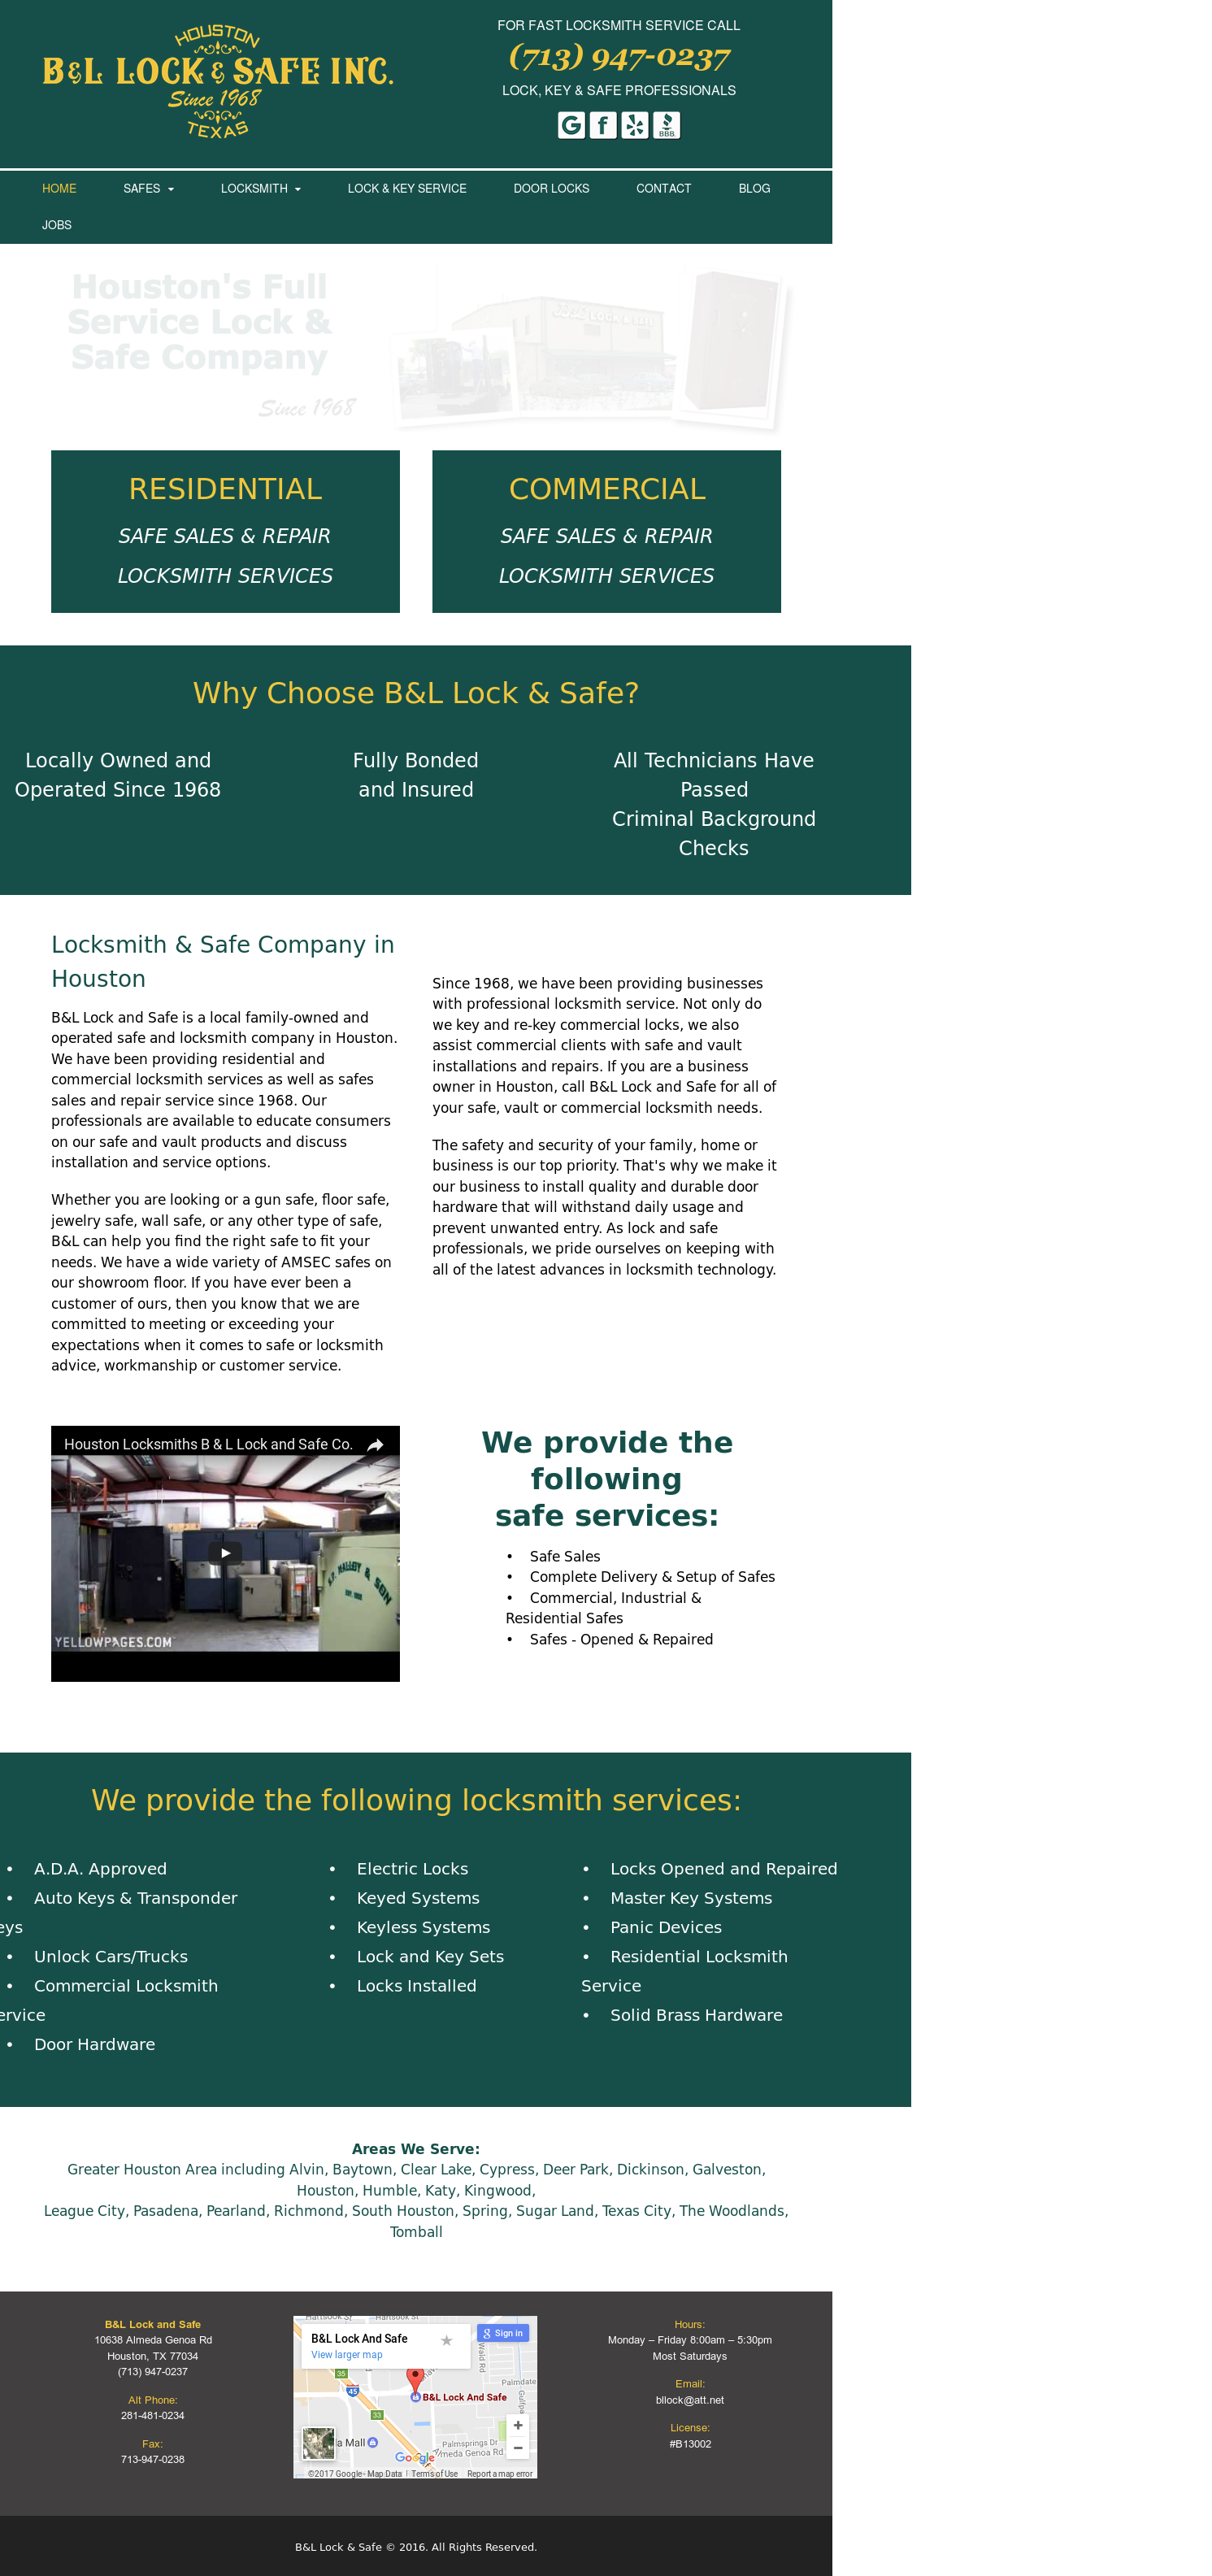 B&l Lock And Safe Competitors, Revenue and Employees - Owler Company